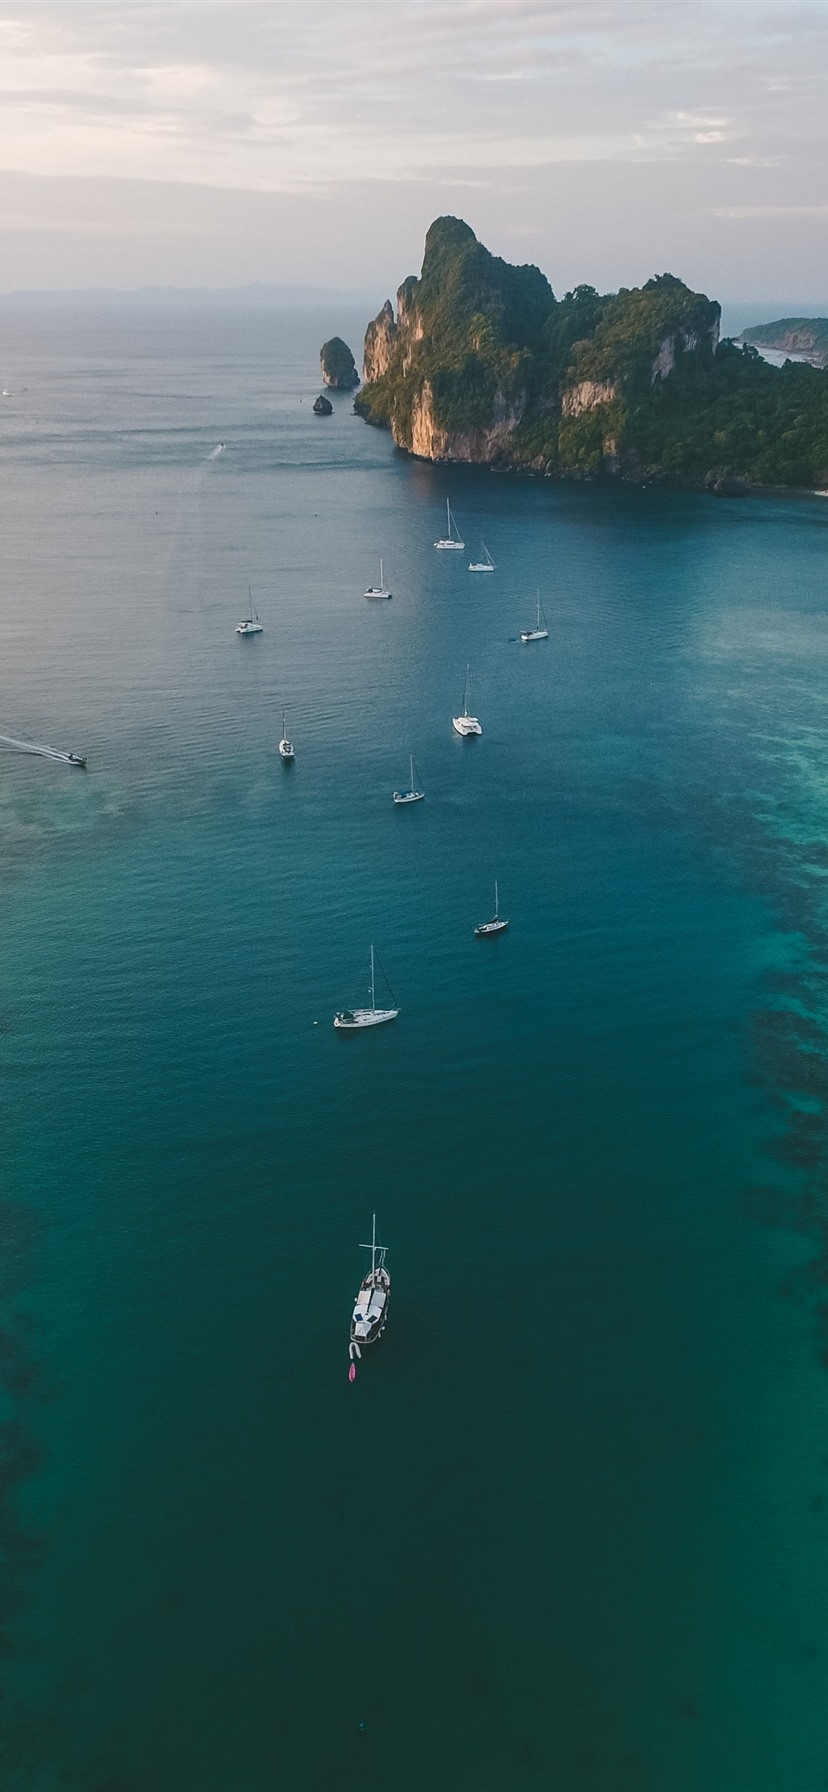 Sea Yachts Coast Top View 1242x2688 Iphone 11 Pro Xs Max Wallpaper Background Picture Image